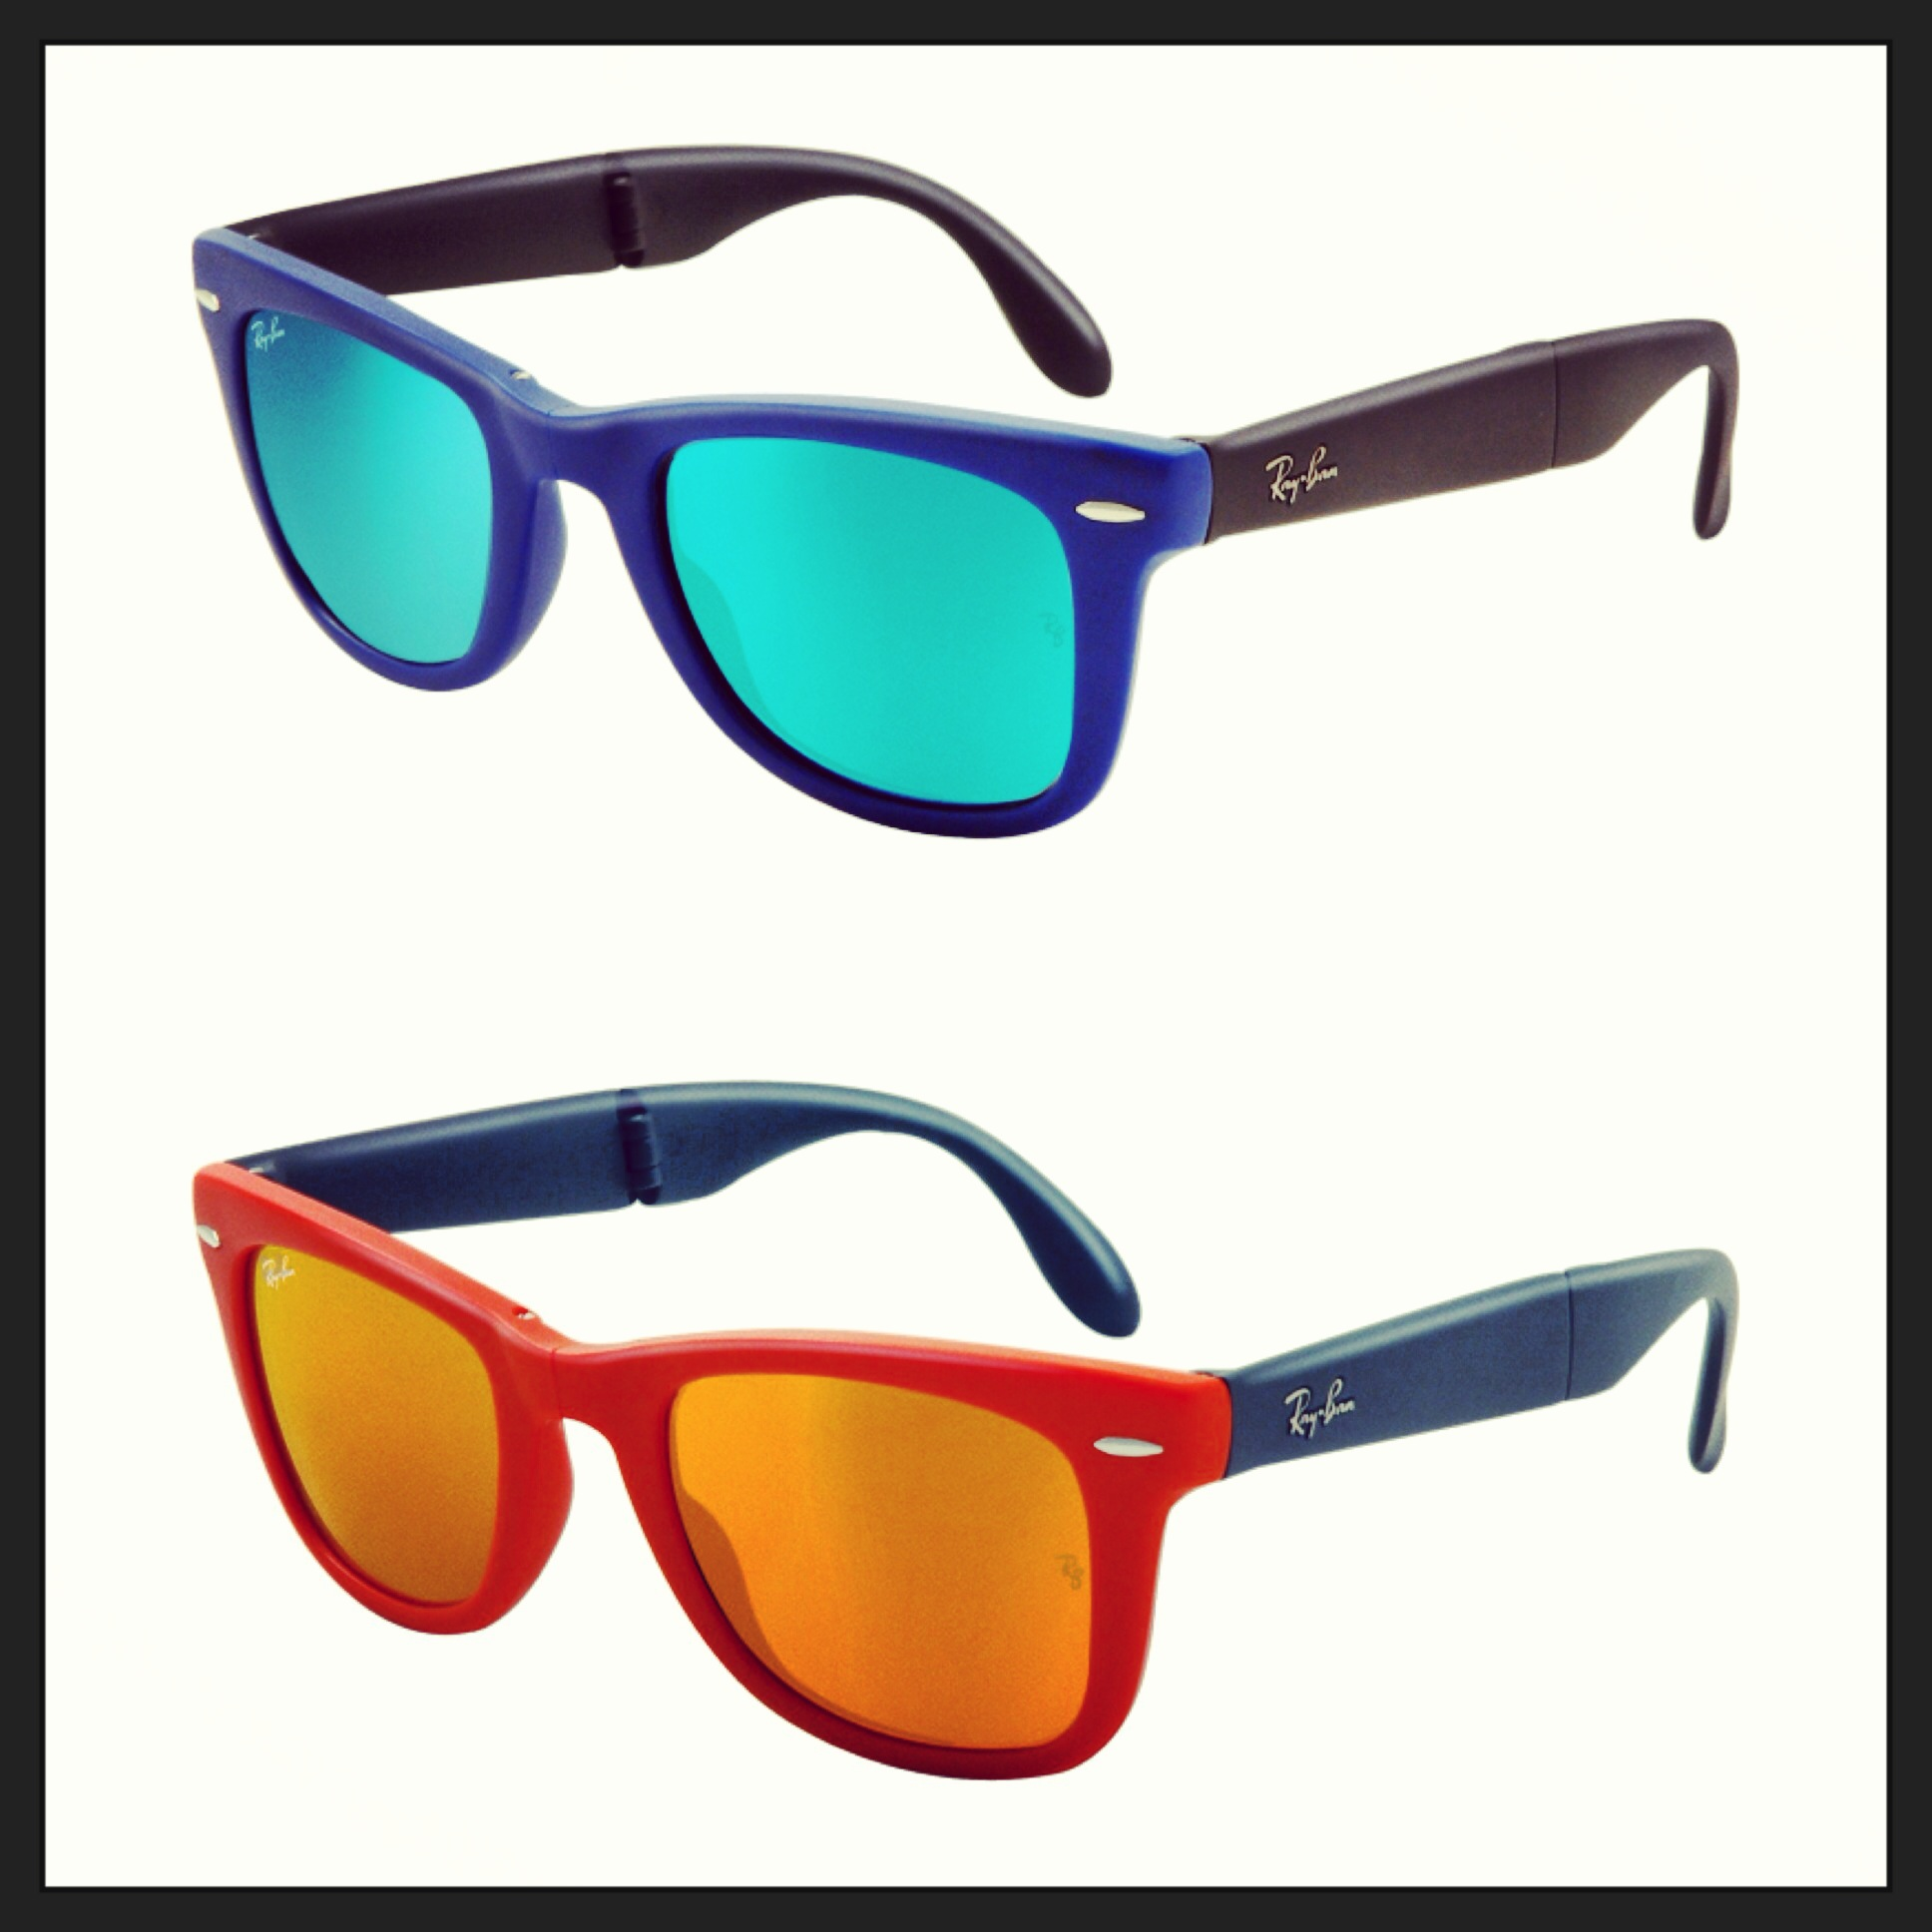 dfd56f8066509 Ray-Ban Folding Wayfarers in Chrome Flash Mirrored Lenses ...